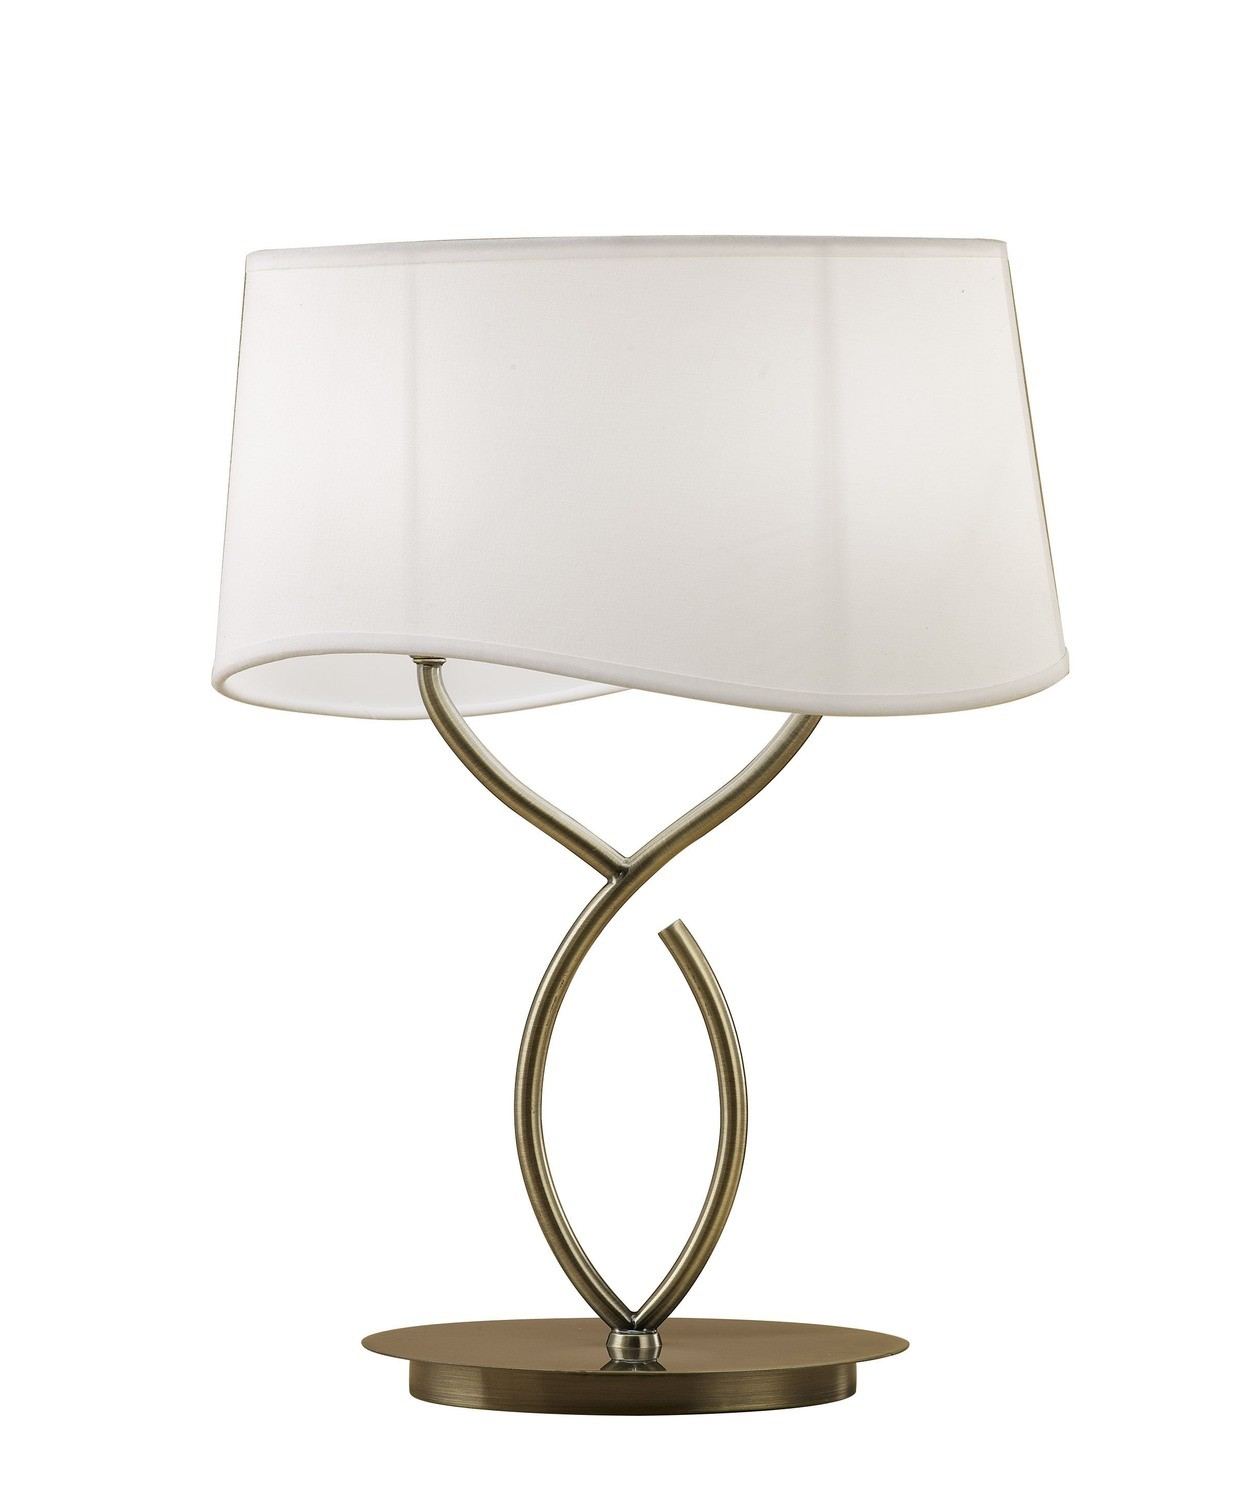 Ninette Table Lamp 2 Light E14 Large, Antique Brass With Ivory White Shade